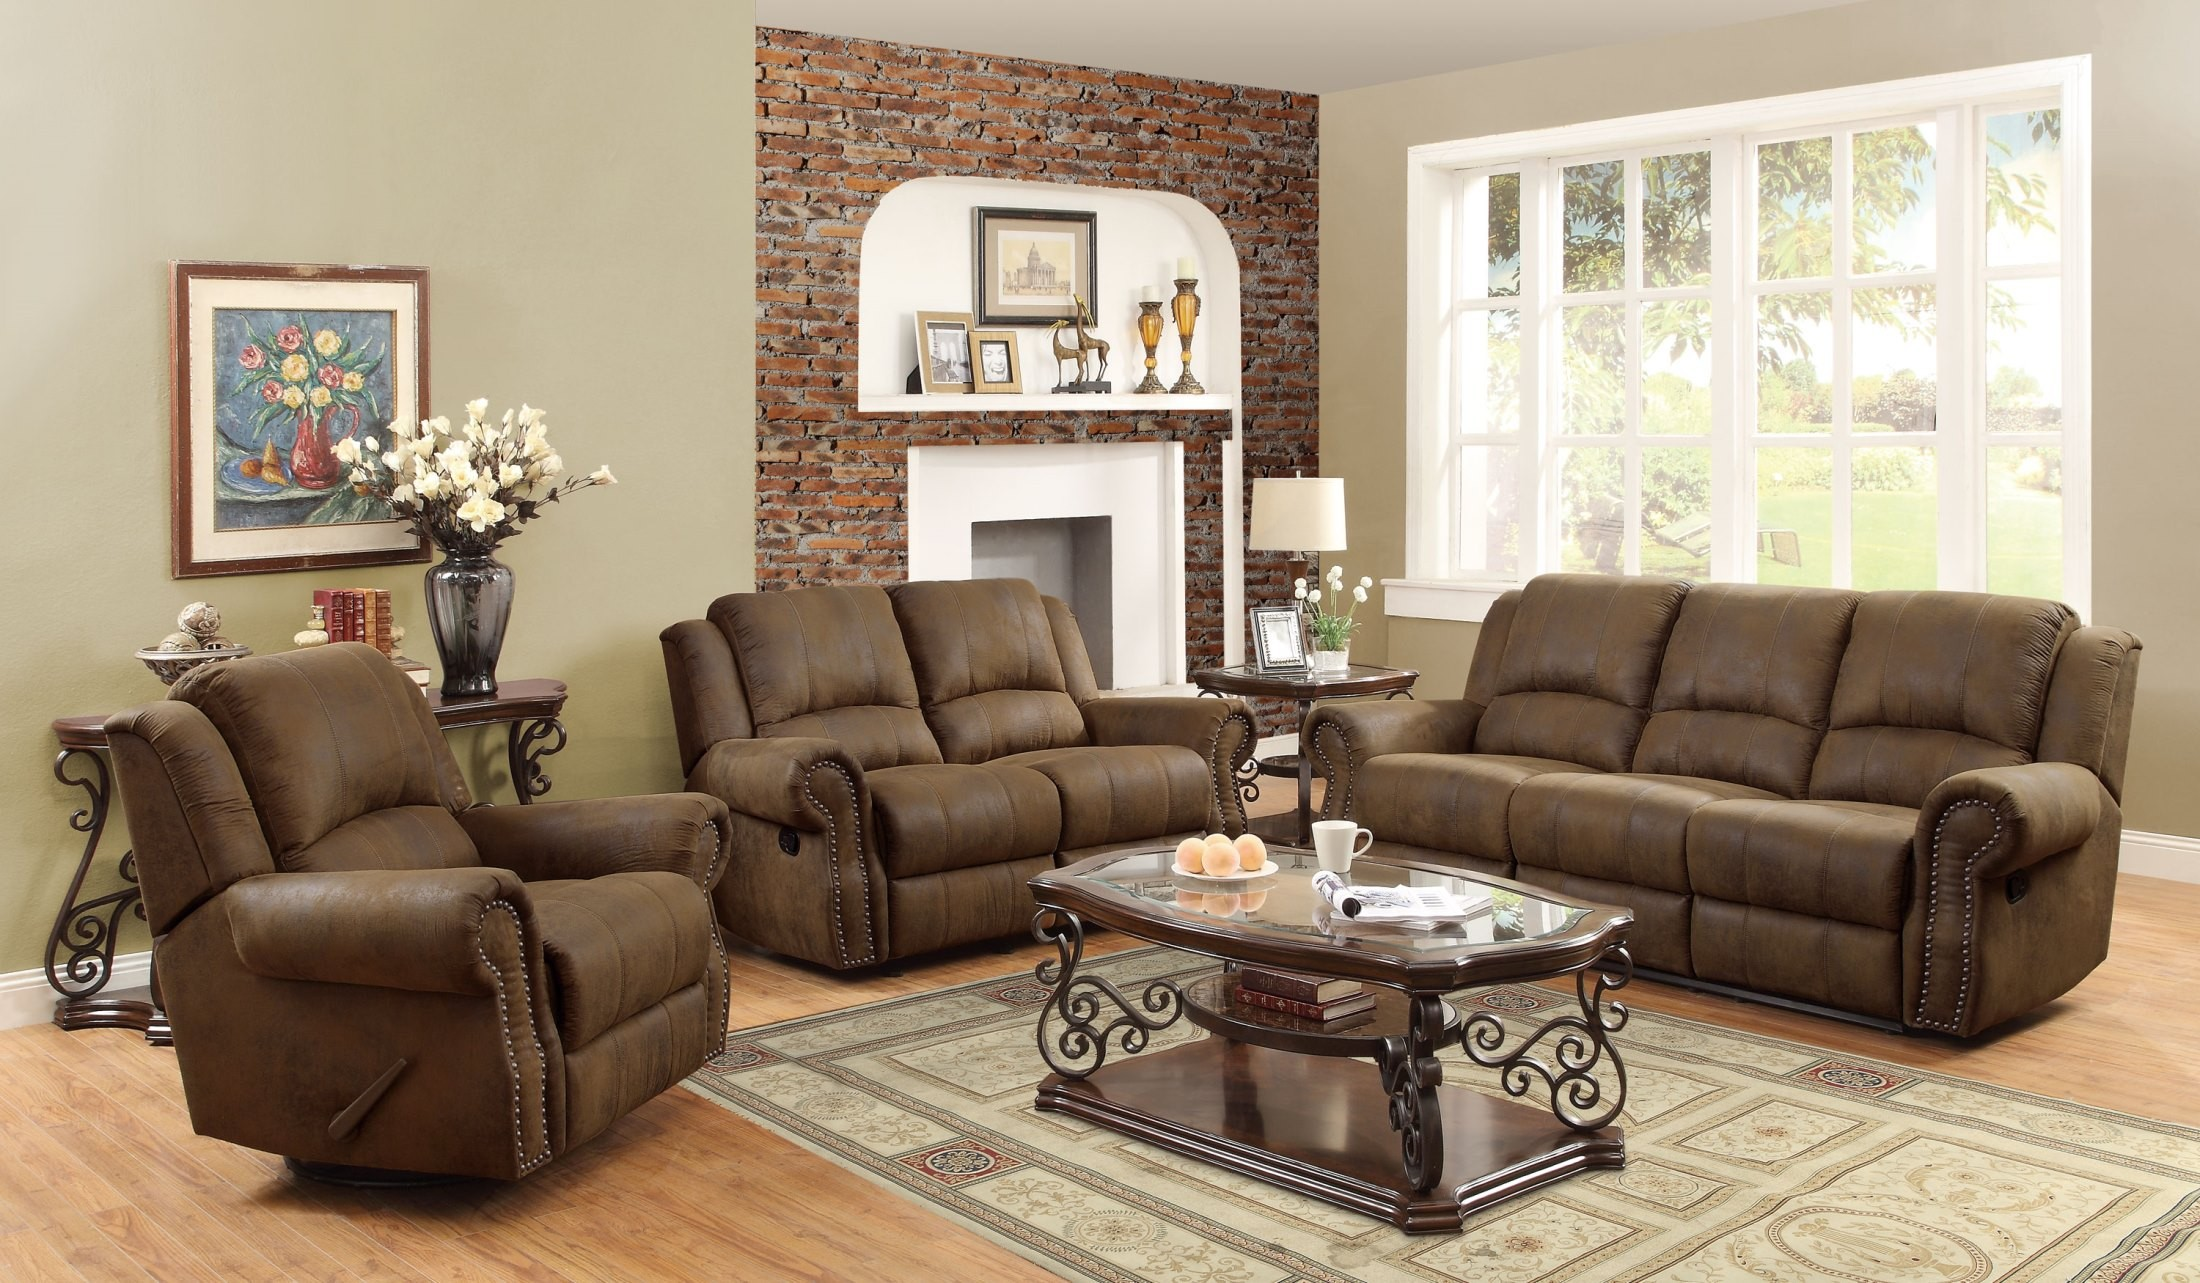 Sir rawlinson brown reclining living room set from coaster for Brown living room set